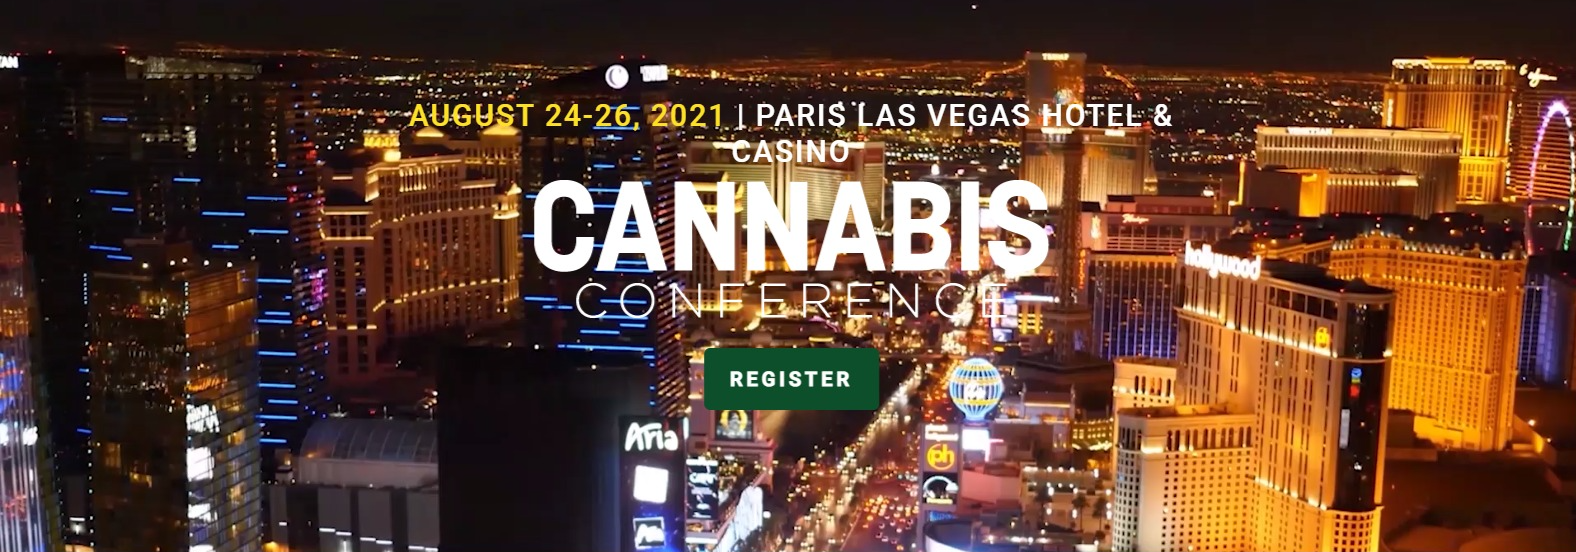 Cannabis Conference 2021 - Cultivation Dispensary Education